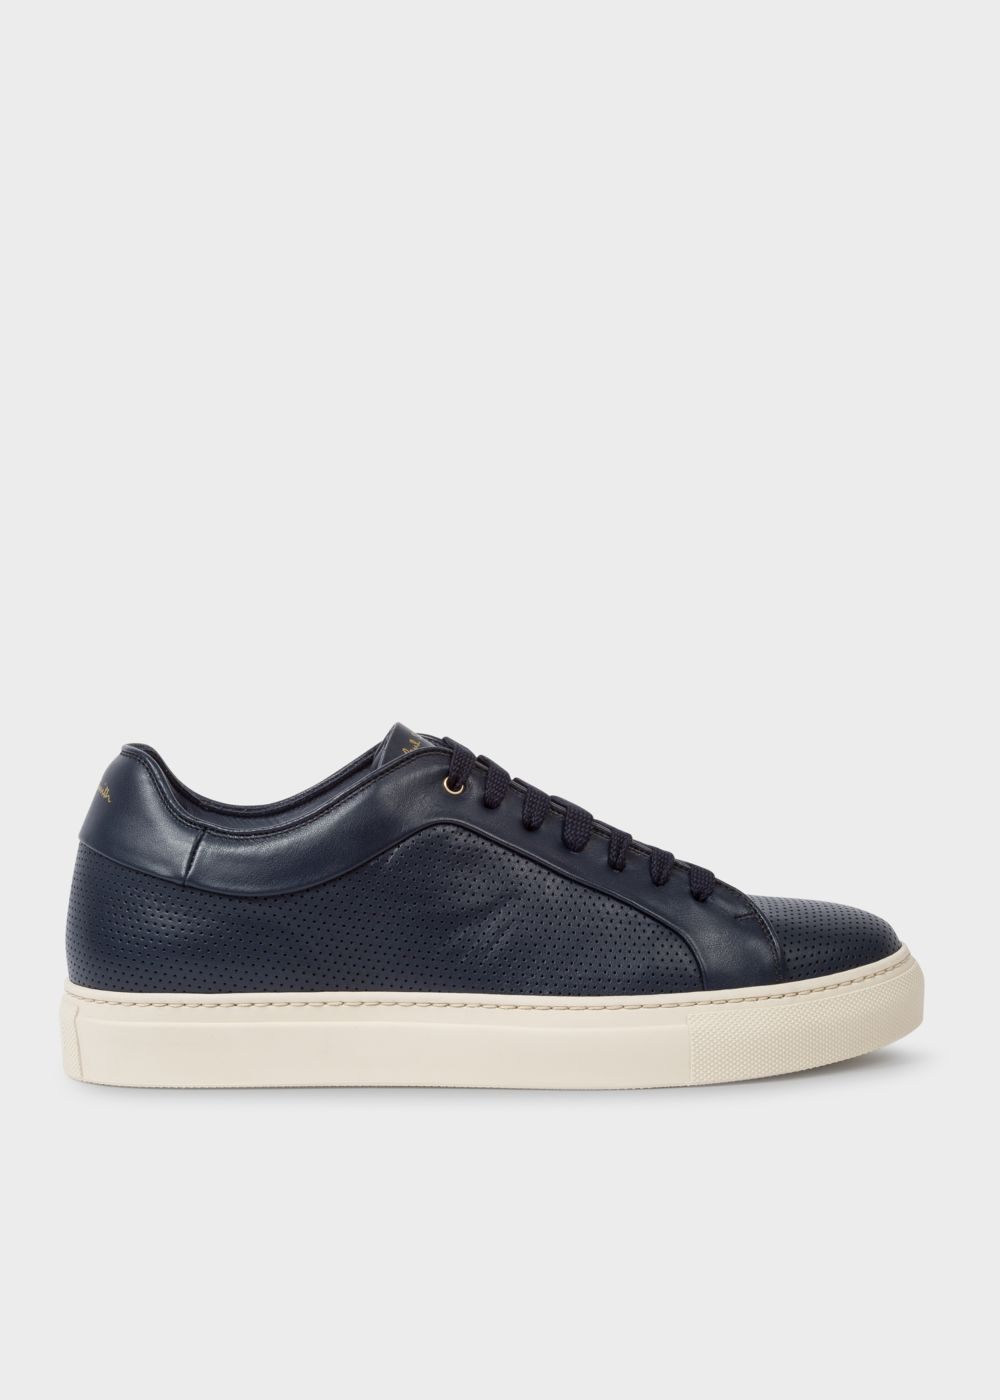 Paul Smith Men's Navy Perforated Leather 'Basso' Trainers